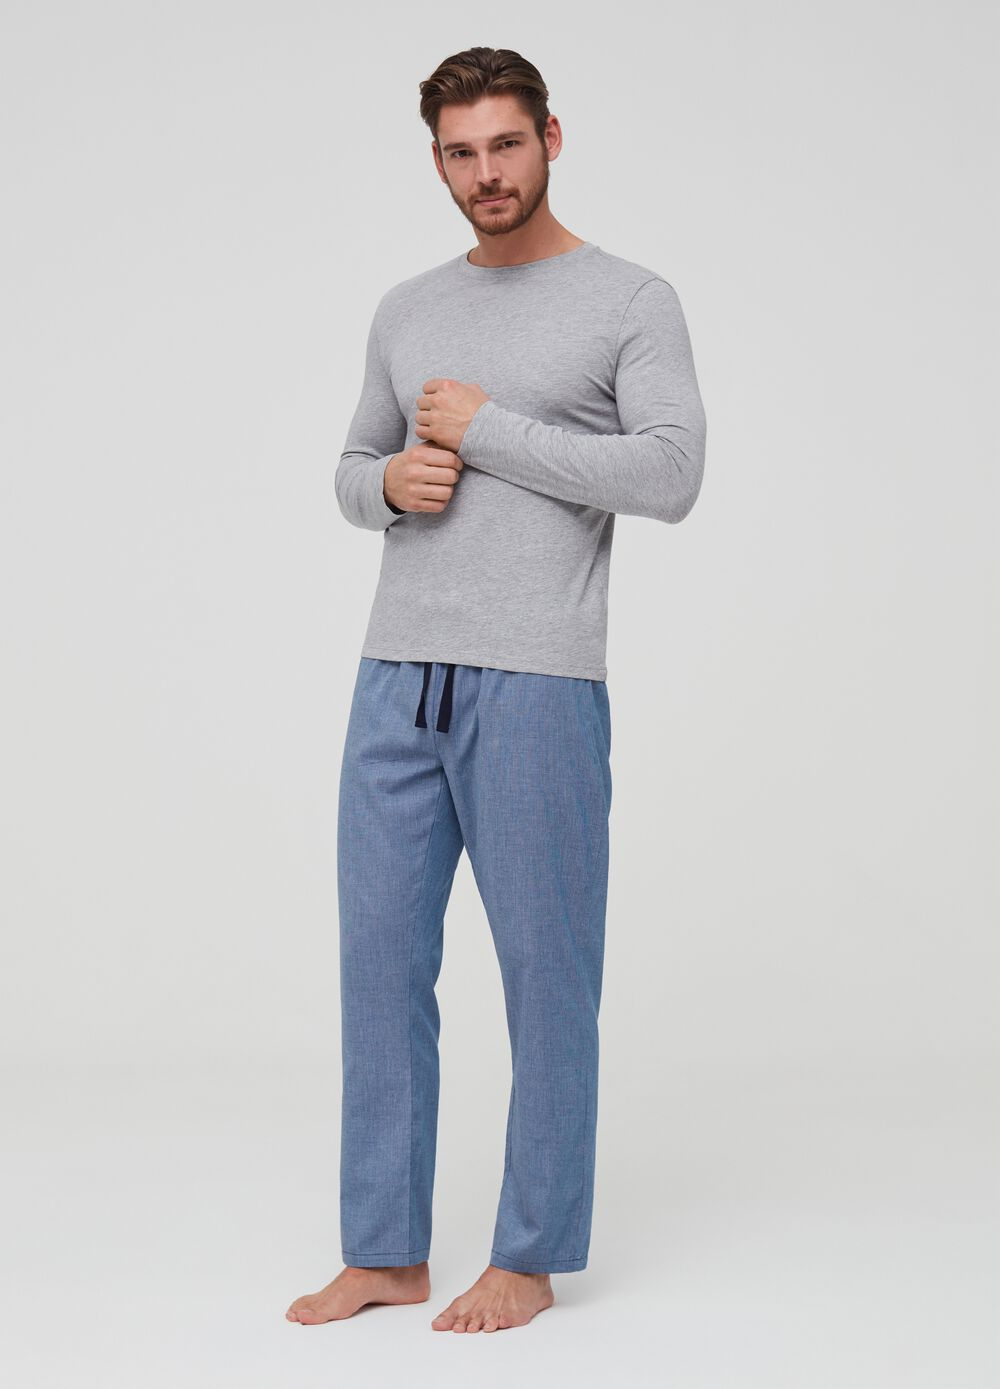 Long pyjama trousers with drawstring